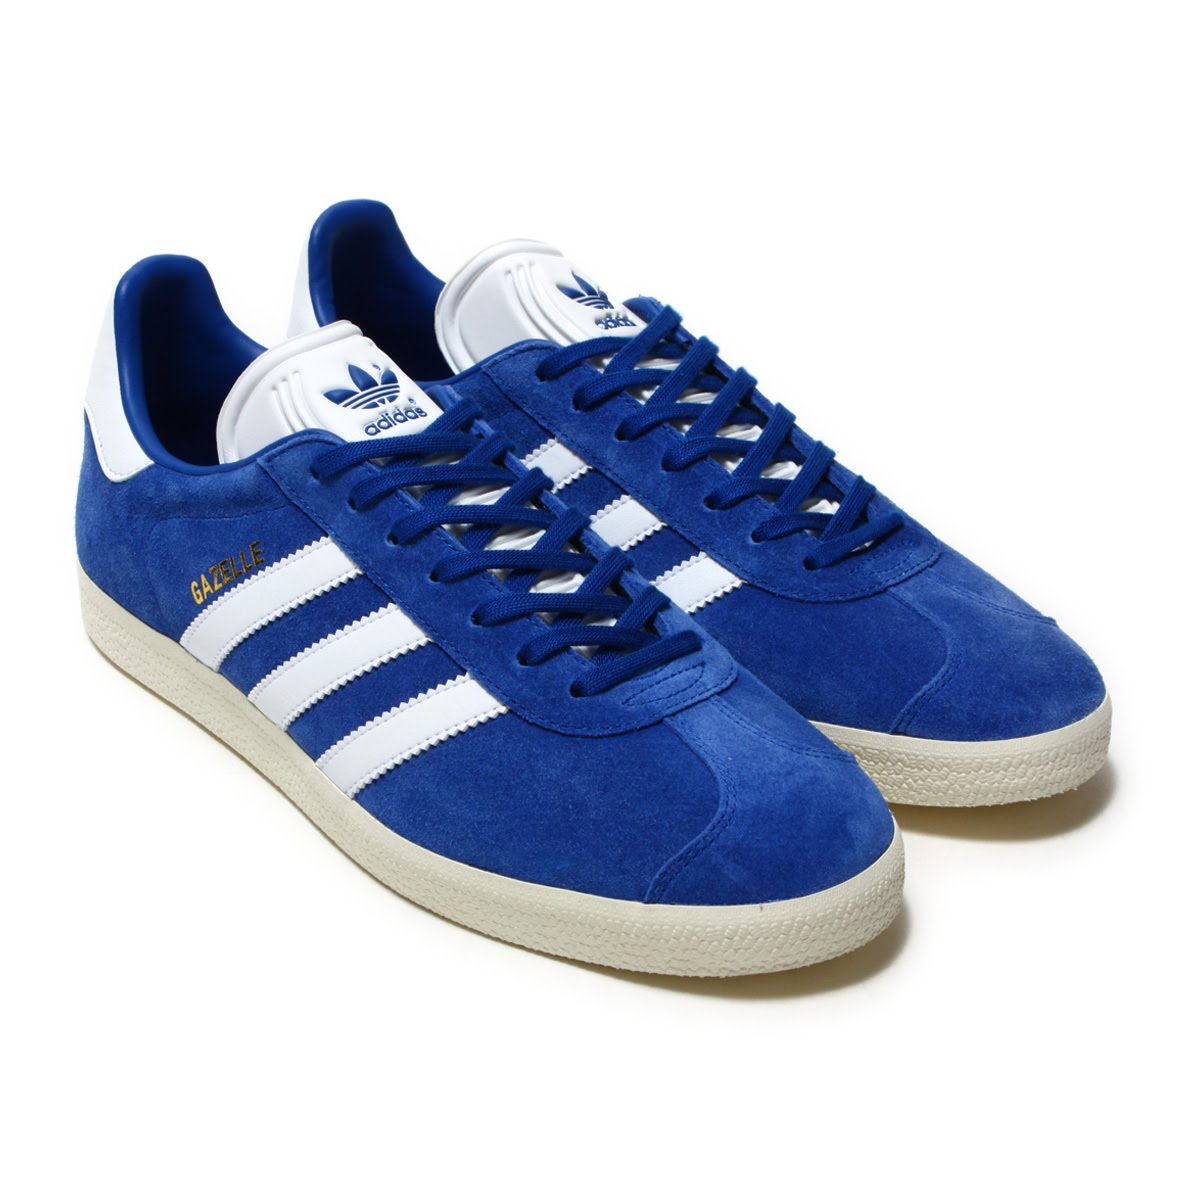 buy popular 1f623 88180 The gazelle which makes the debut as almighty type training shoes of the  soccer, and continues being loved later in every scene up to a  skateboarding park, ...